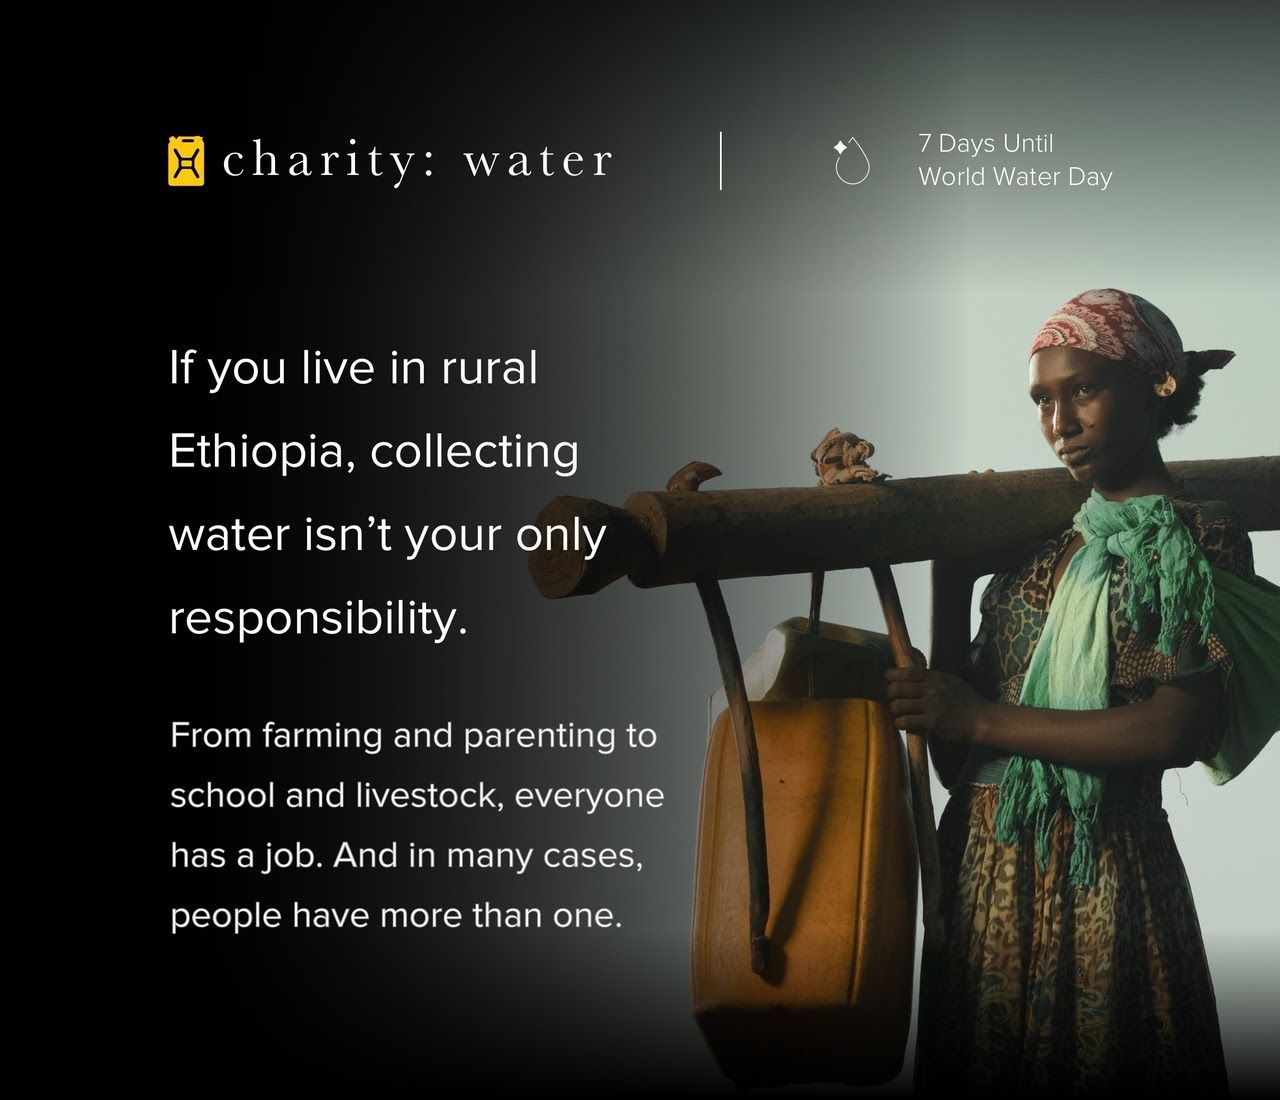 If you live in rural Ethiopia, collecting water isn't your